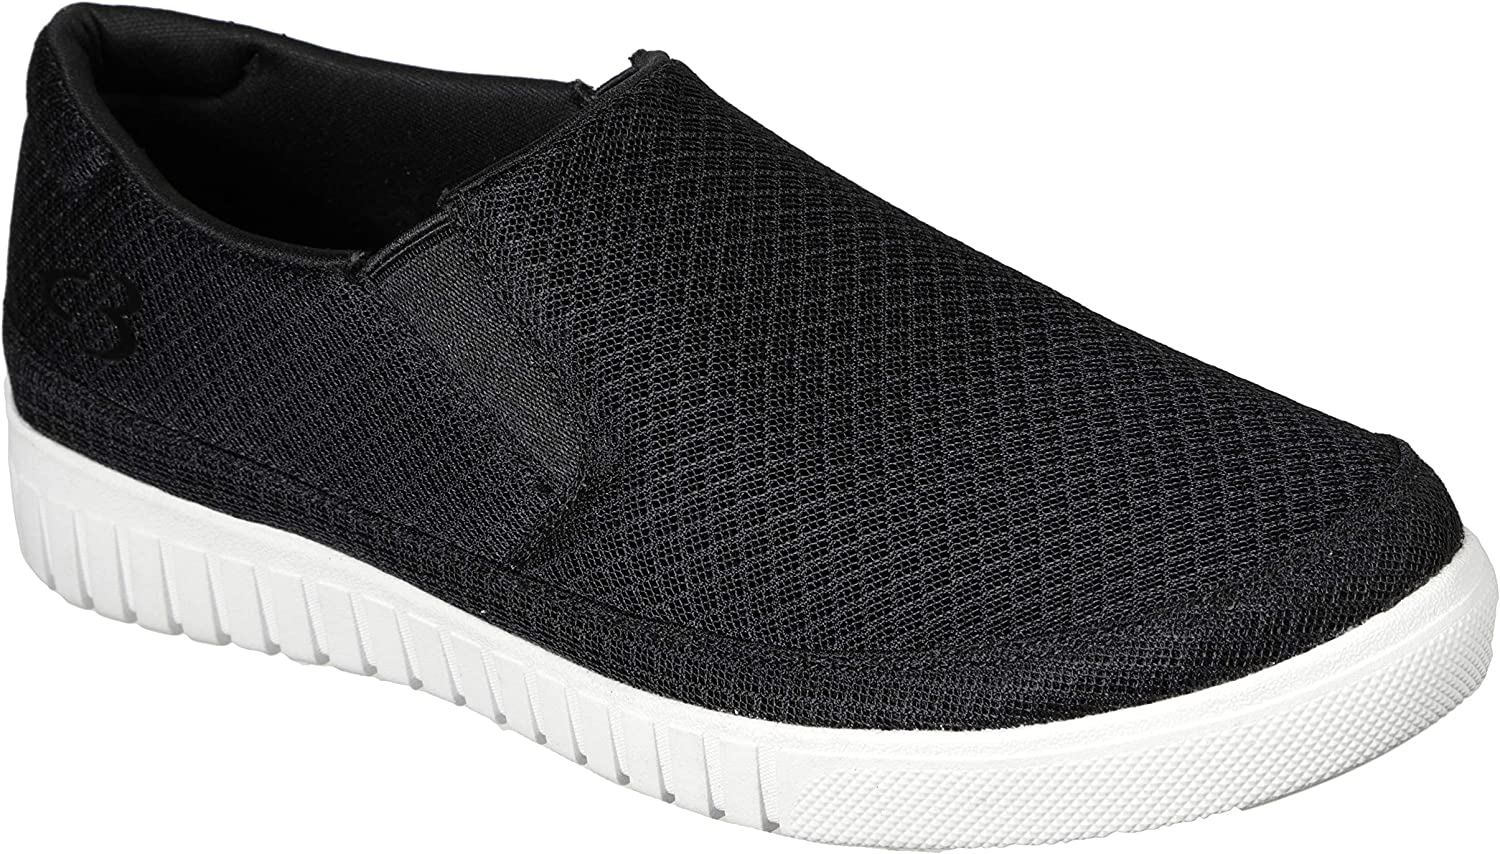 Concept 3 by Skechers Men's Naiter Mesh Slip-on Casual Sneaker